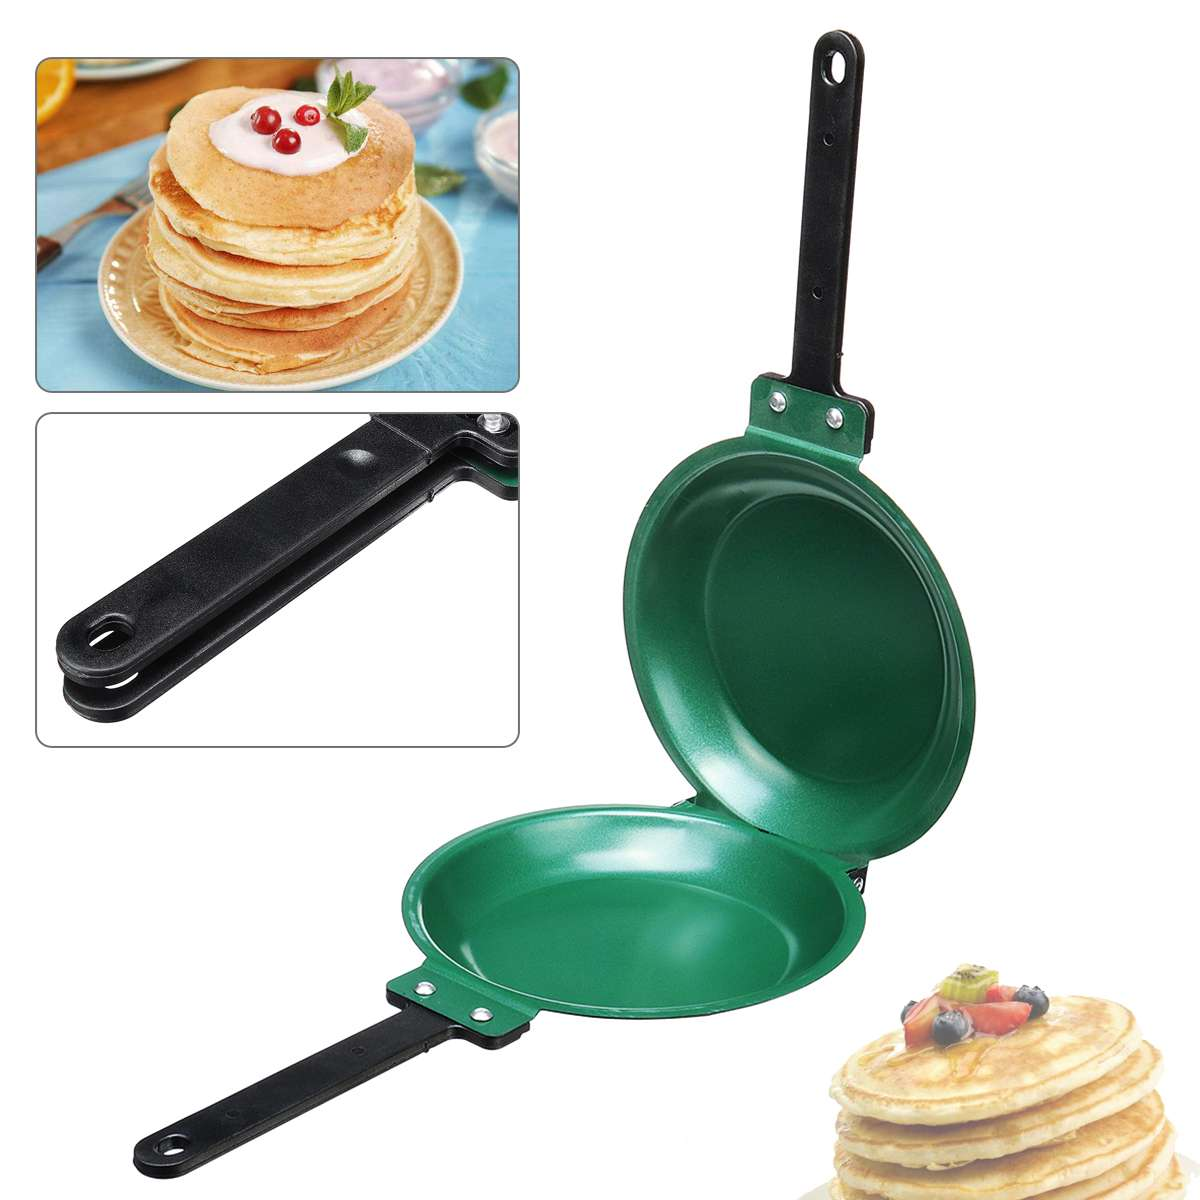 7.5Inch Flip Double Side Frying Pan Non Stick Round for Cakes Pancake Toast Egg Breakfast Making Hand Frying Pan Kitchen Supply Сковорода